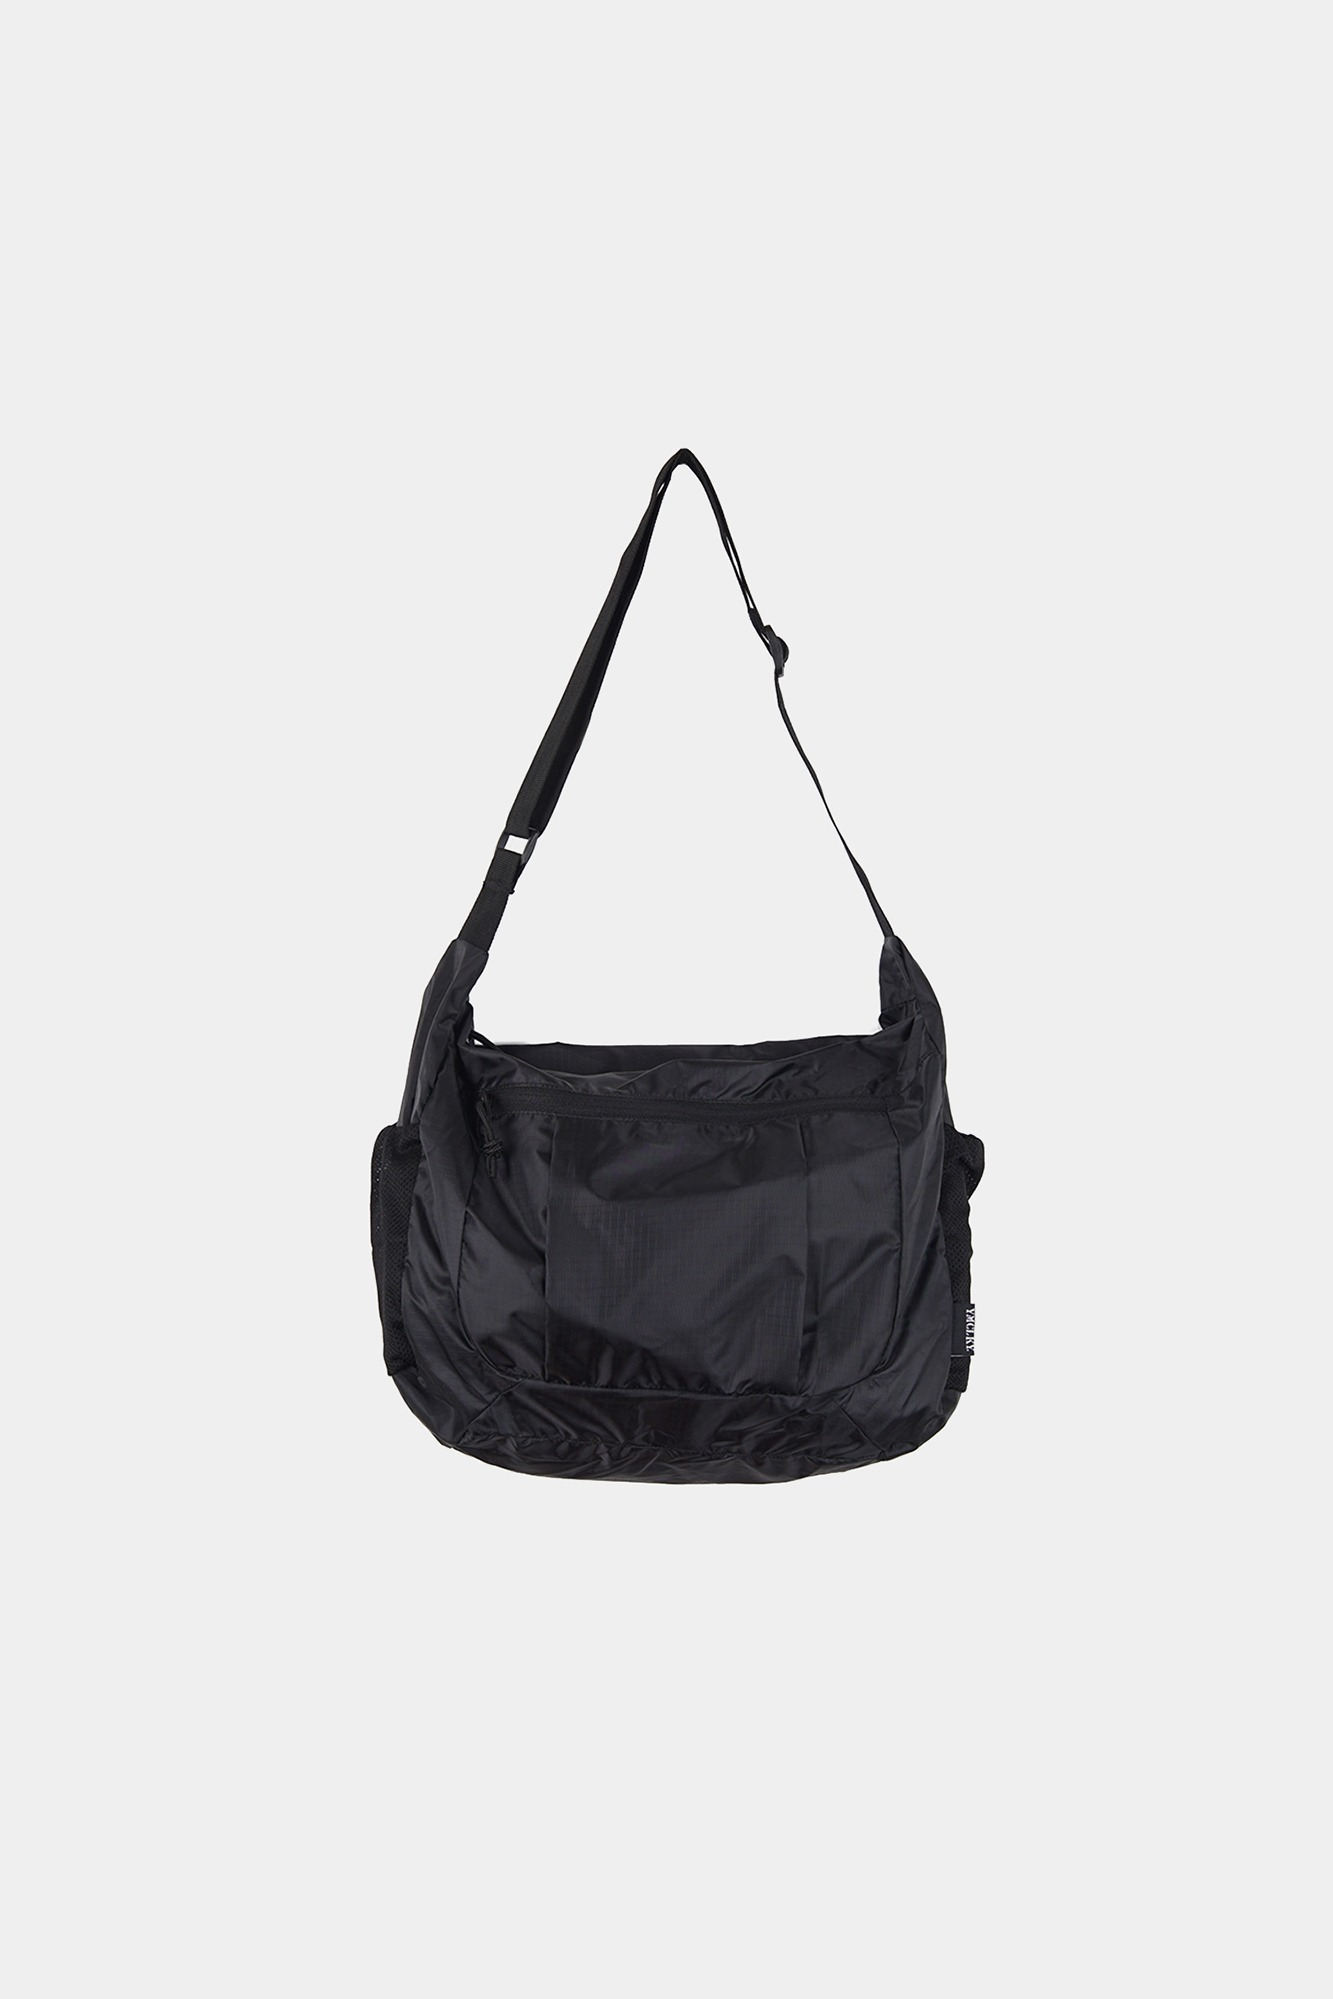 "YMCL KY GB0608 Compact Shoulder Bag ""Black"""